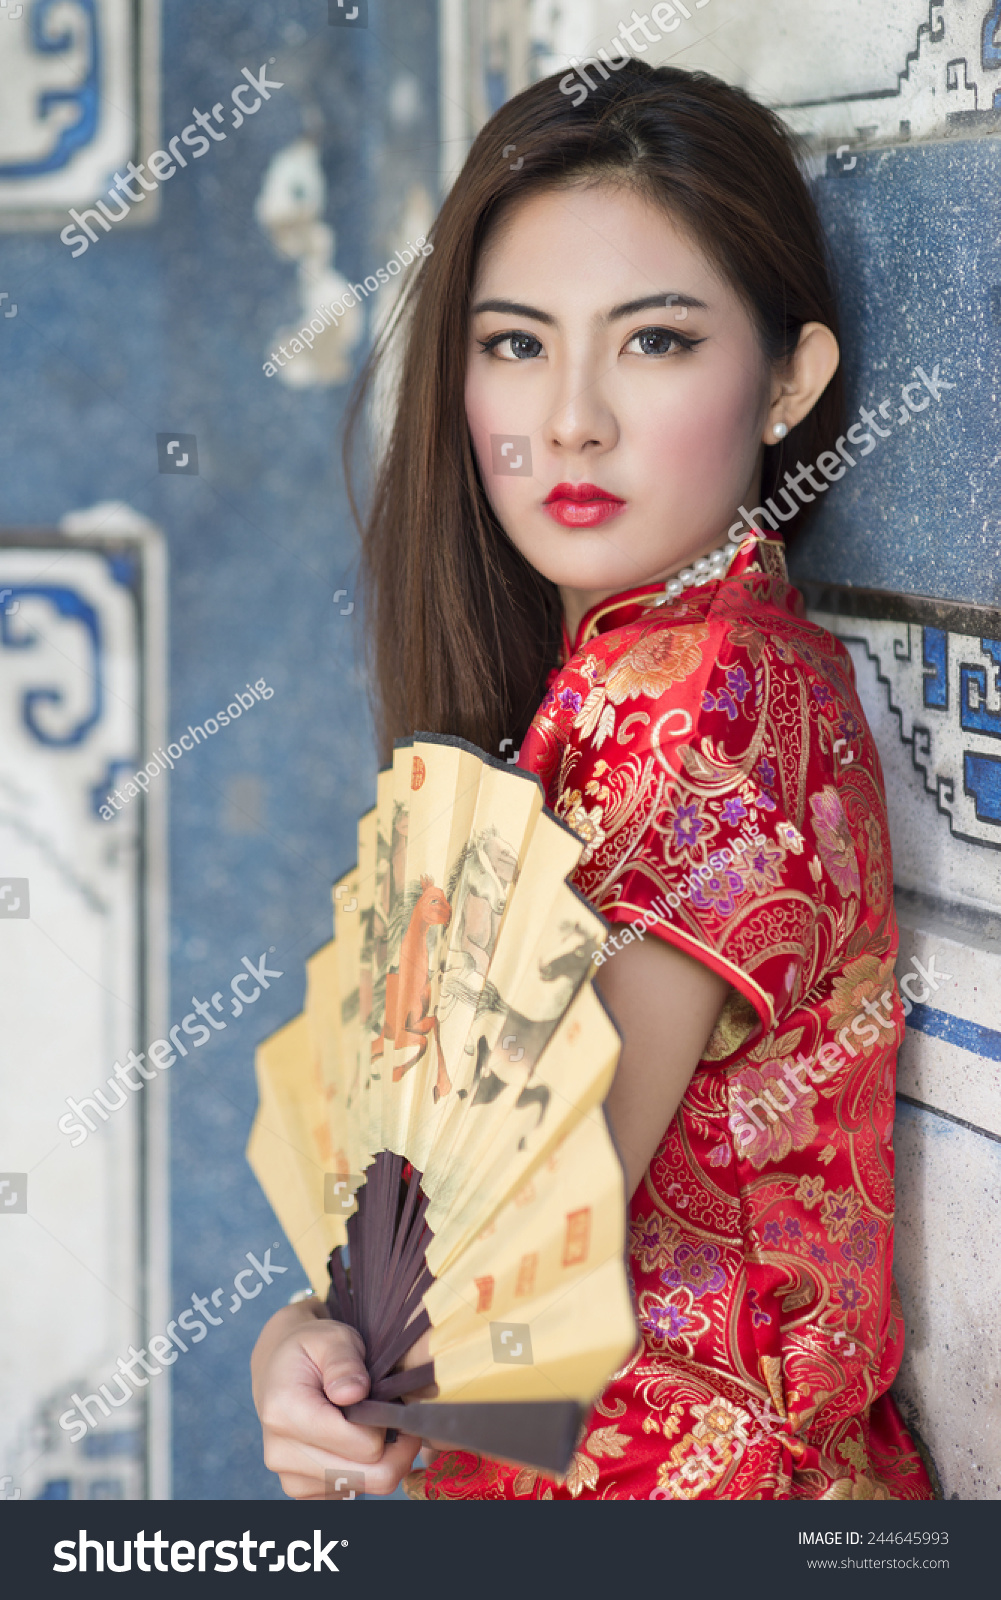 CHINESE TRADITIONAL HANFU ARE NOW POPULAR - Page 50 of 53 |Sweet Elegant Ancient Chinese Girl